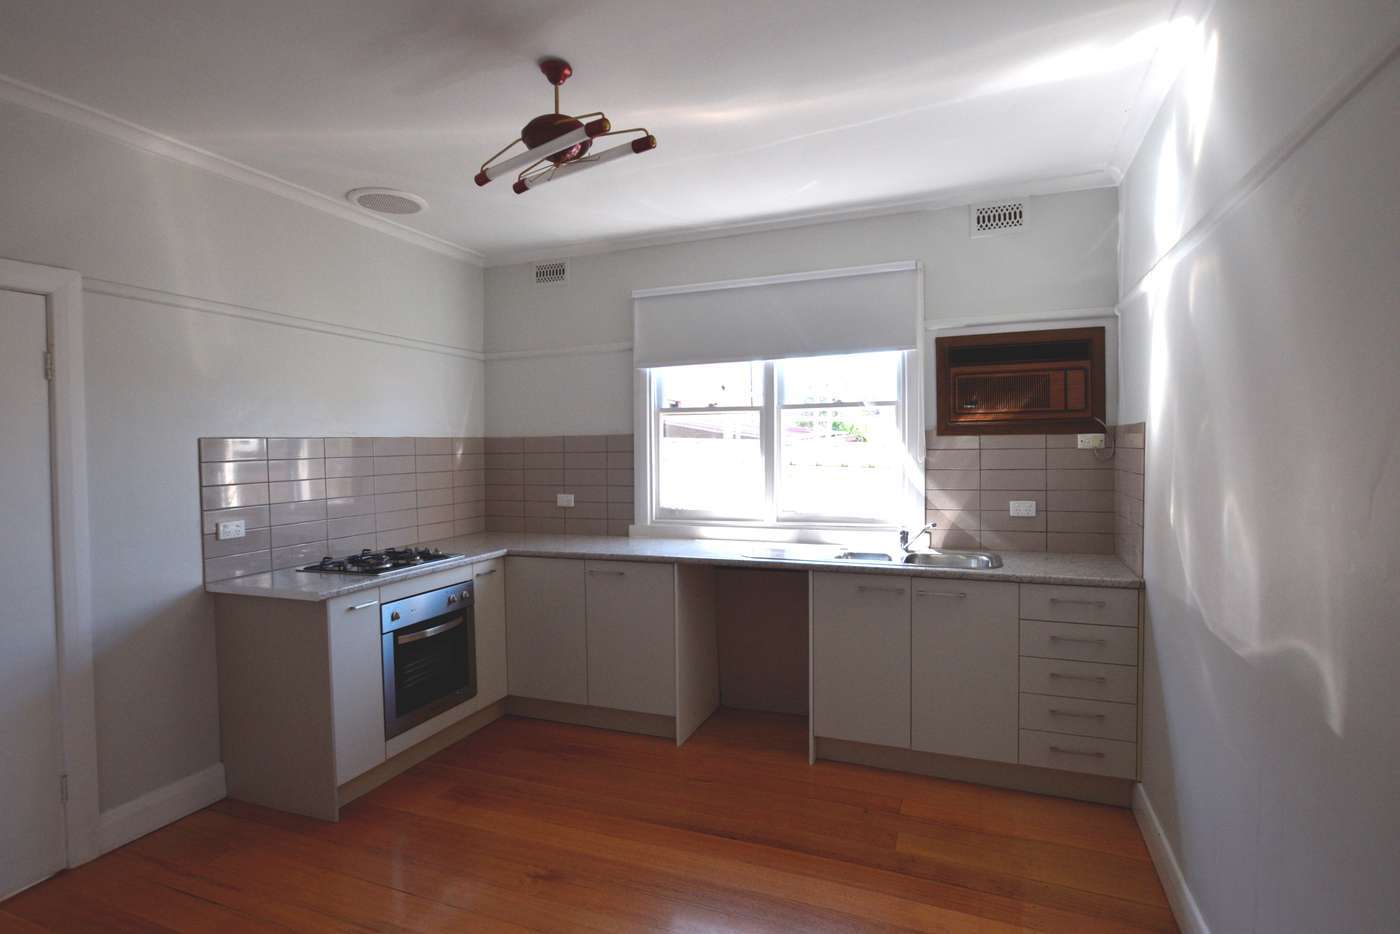 Seventh view of Homely house listing, 1 Kallista Court, Preston VIC 3072